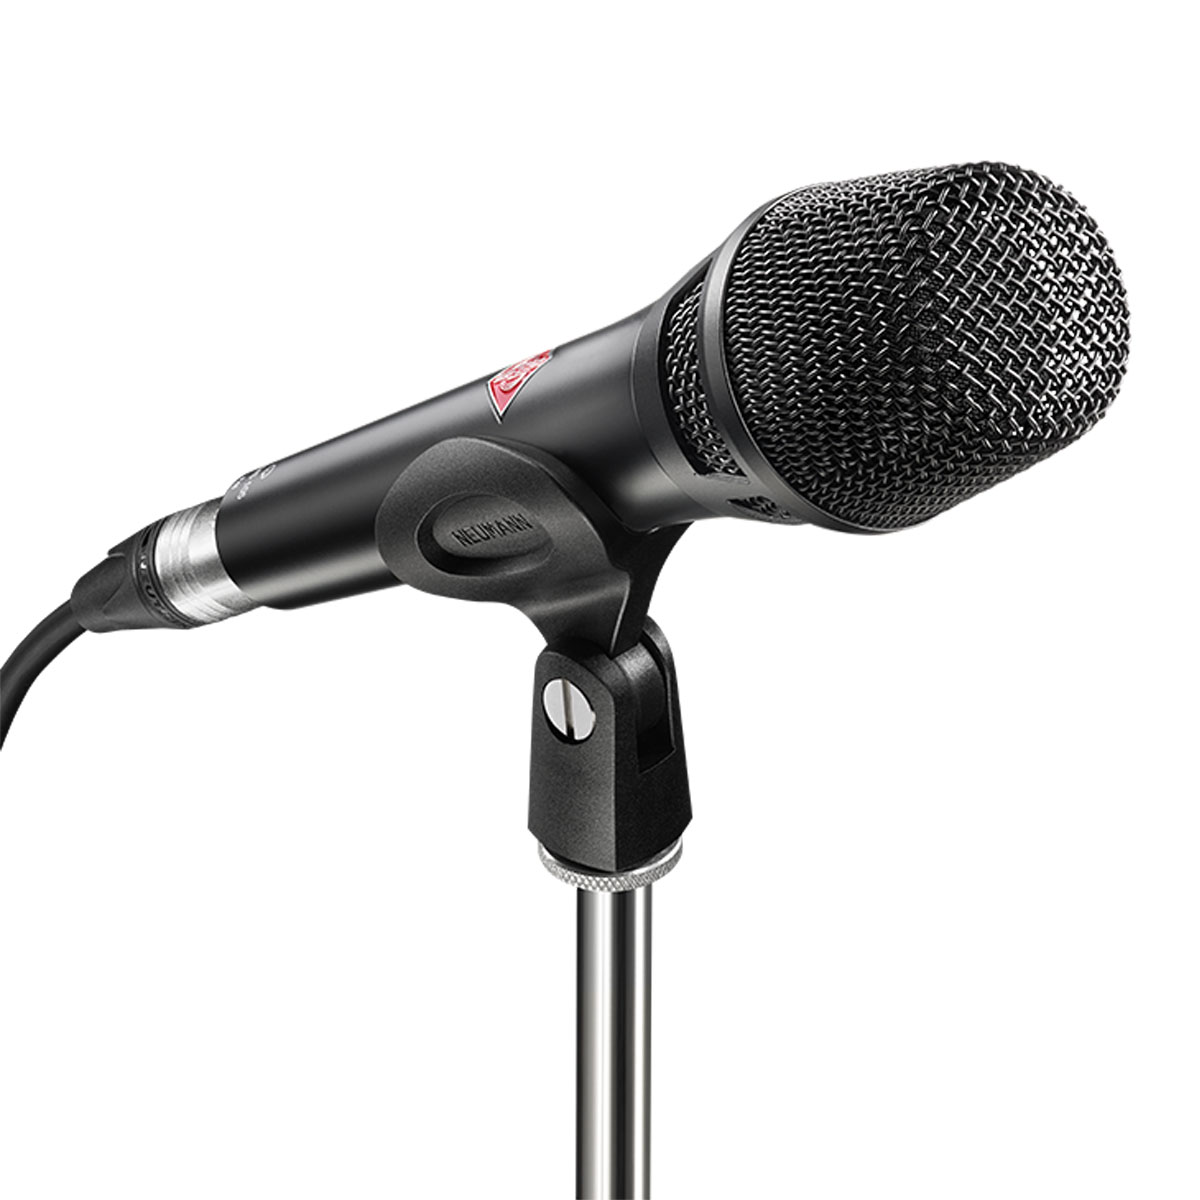 Neumann Kms 105 Stage Vocal Microphone Sonic Circus Power Pc Microphones From P48 Or Phantom 48 Volts